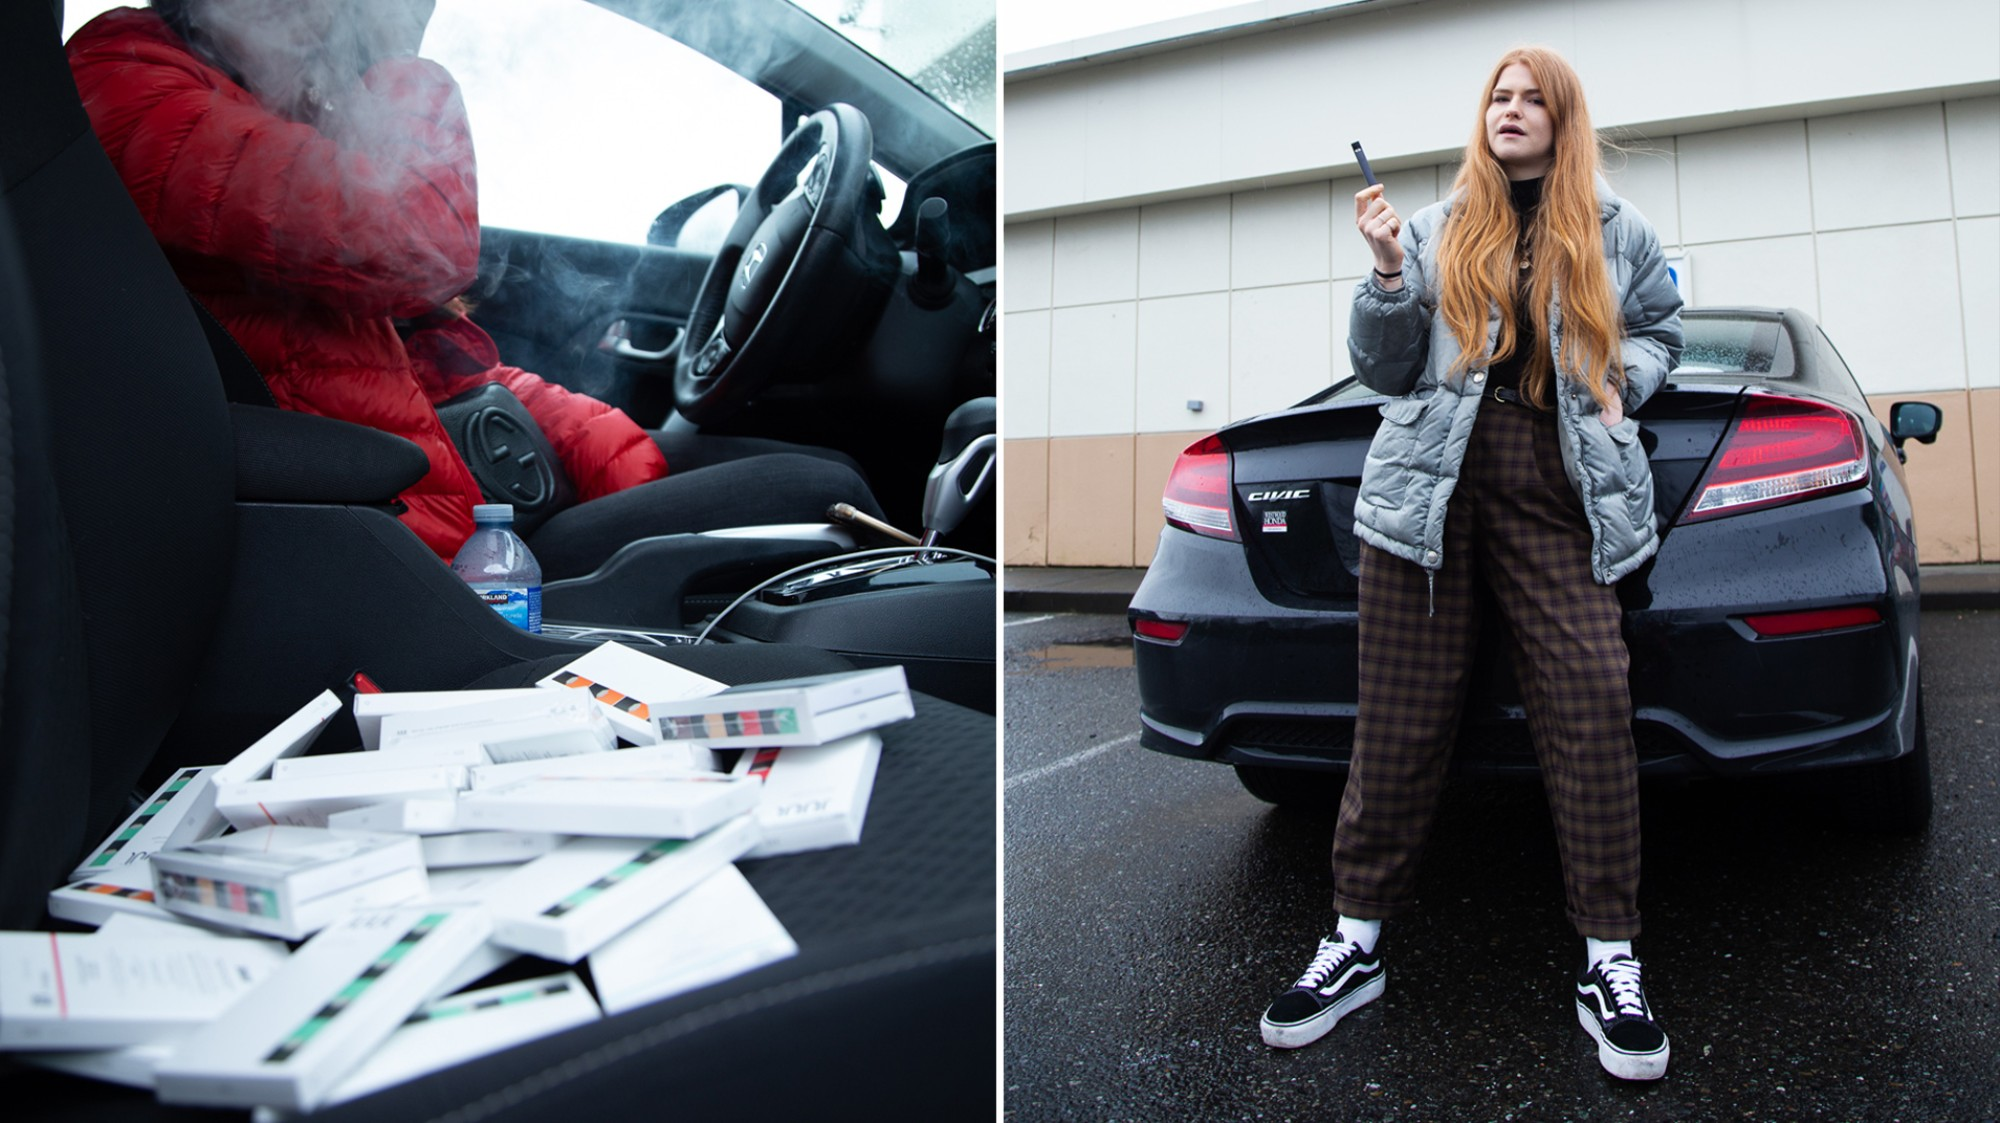 I Followed Vape-Smuggling Teens to Find Out Why They're So